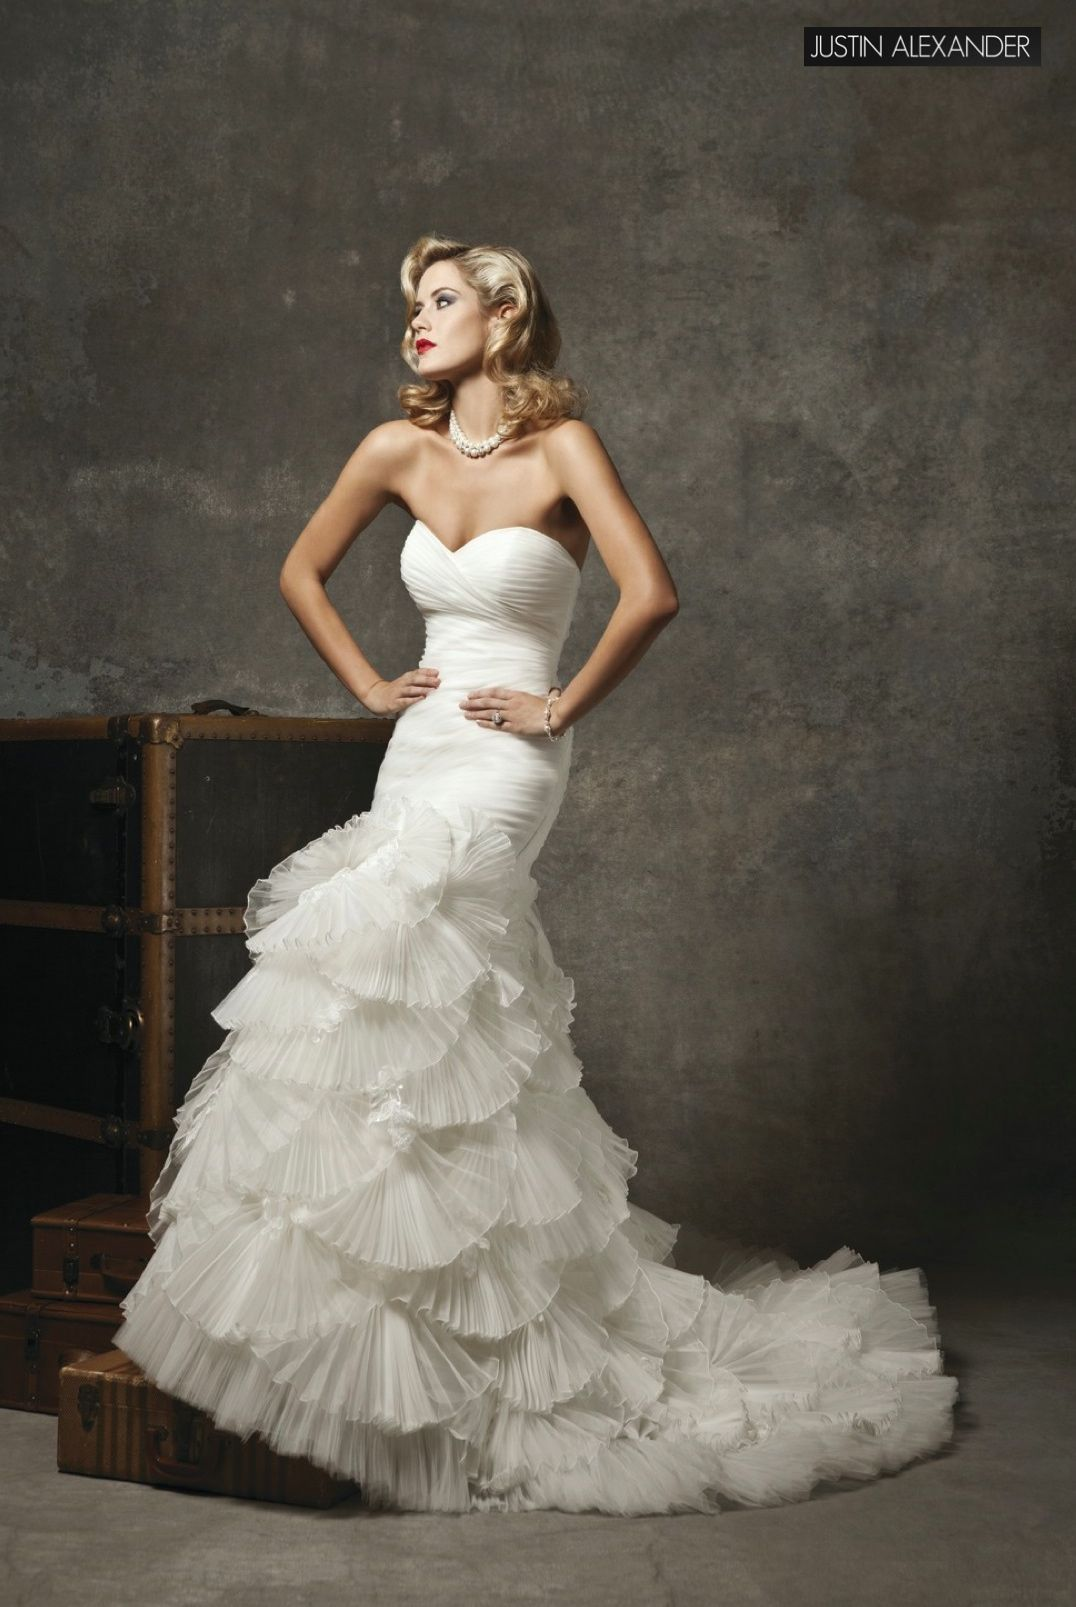 Mermaid the best wedding dresses pinterest mermaid weddings justin alexander wedding dresses style 8639 strapless sweetheart side pleated organza mermaid organza fan skirt with lace appliques buttons over the back ombrellifo Images